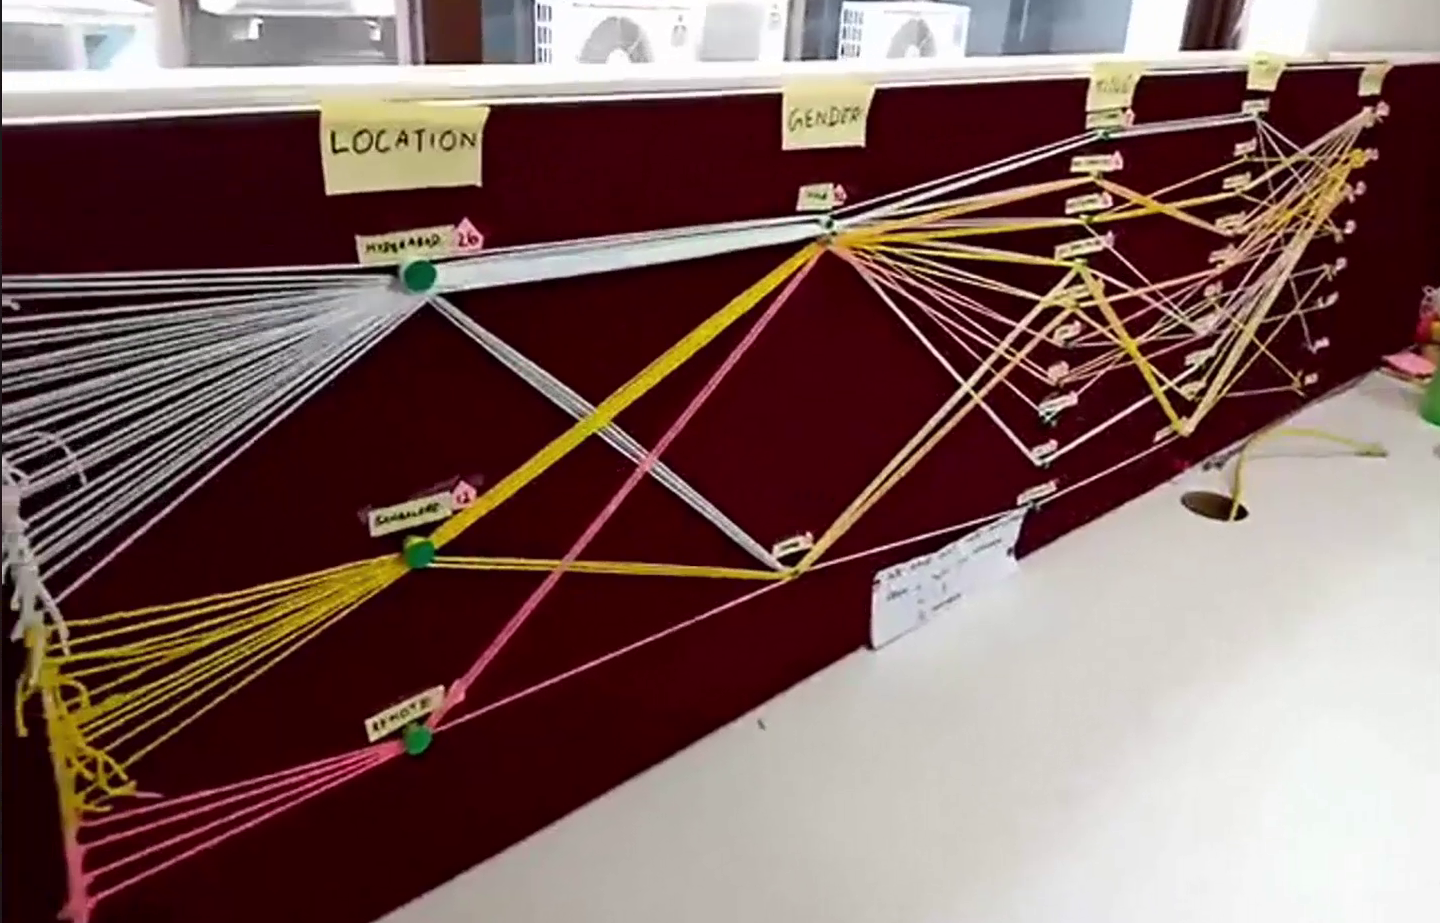 'The Humans of the Hackathon'—created by Pratap, Richie & Sainath is a physical visualization of participation at the July